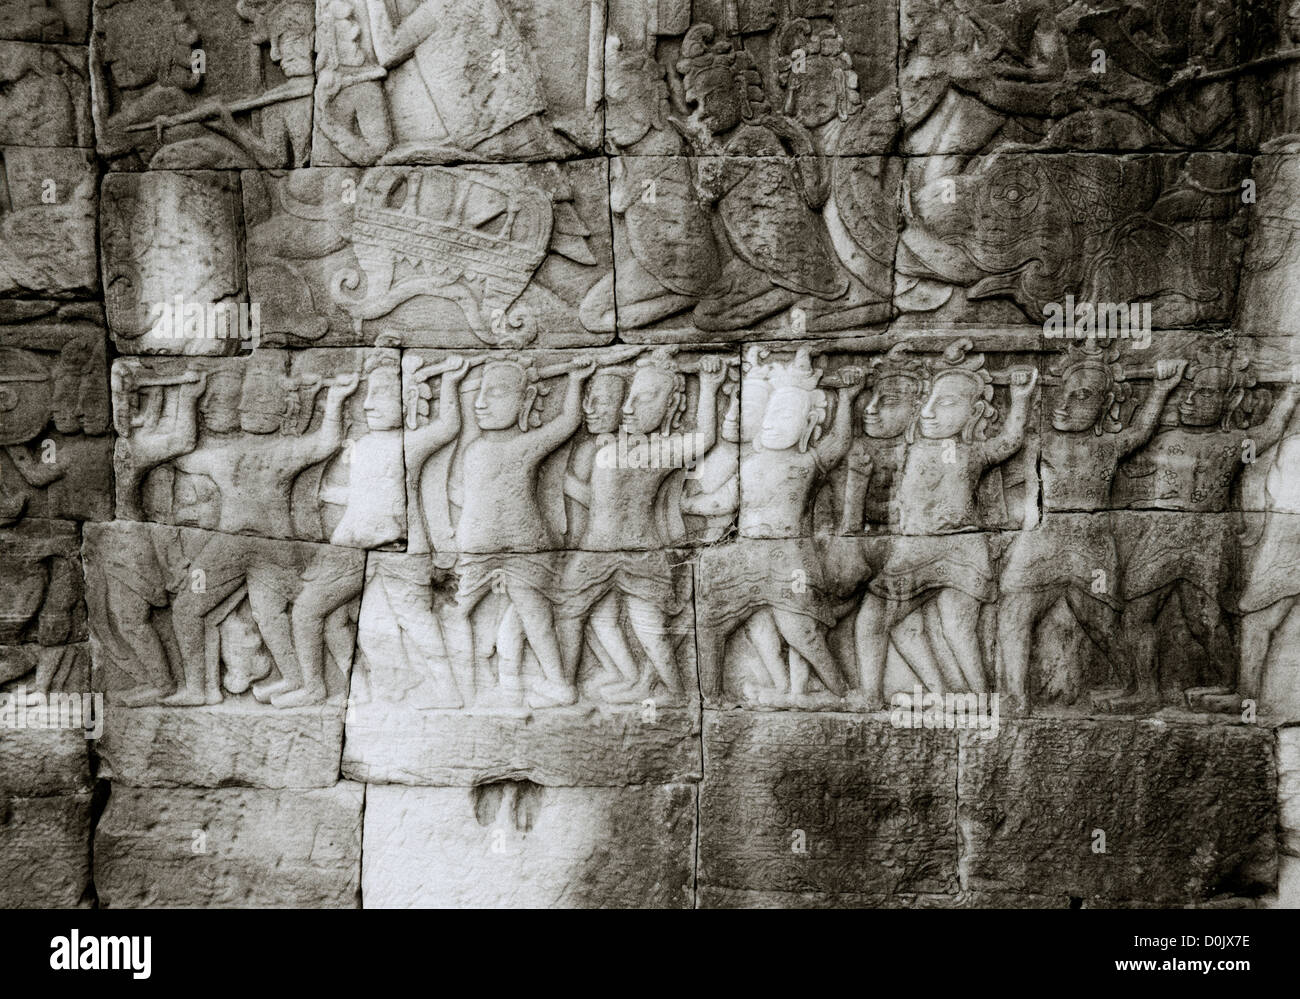 Bas relief khmer sculpture carvings at the Bayon Temple of Angkor Thom at Temples of Angkor in Cambodia in Southeast - Stock Image